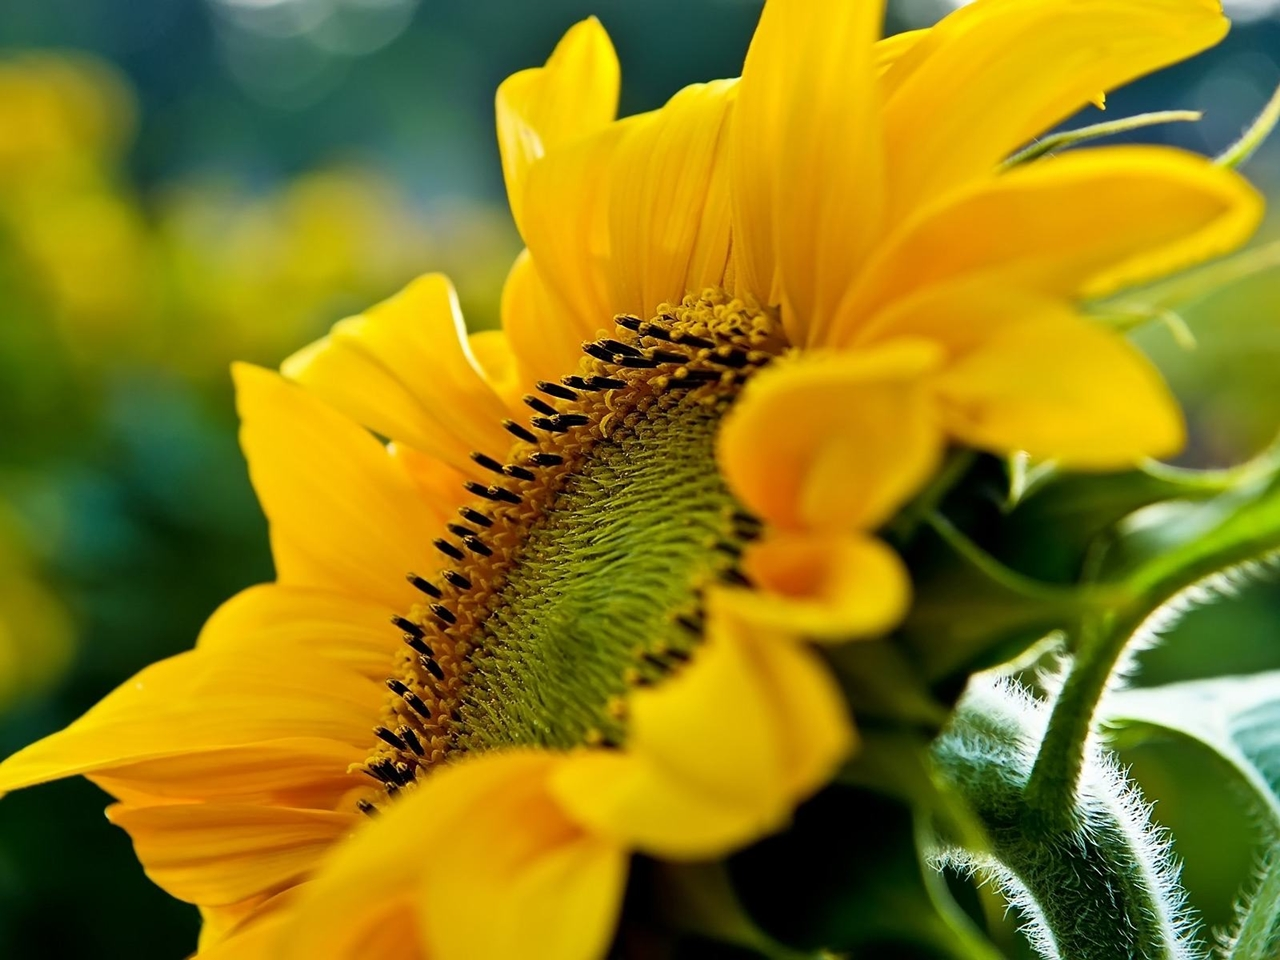 Photos of sunflowers 18